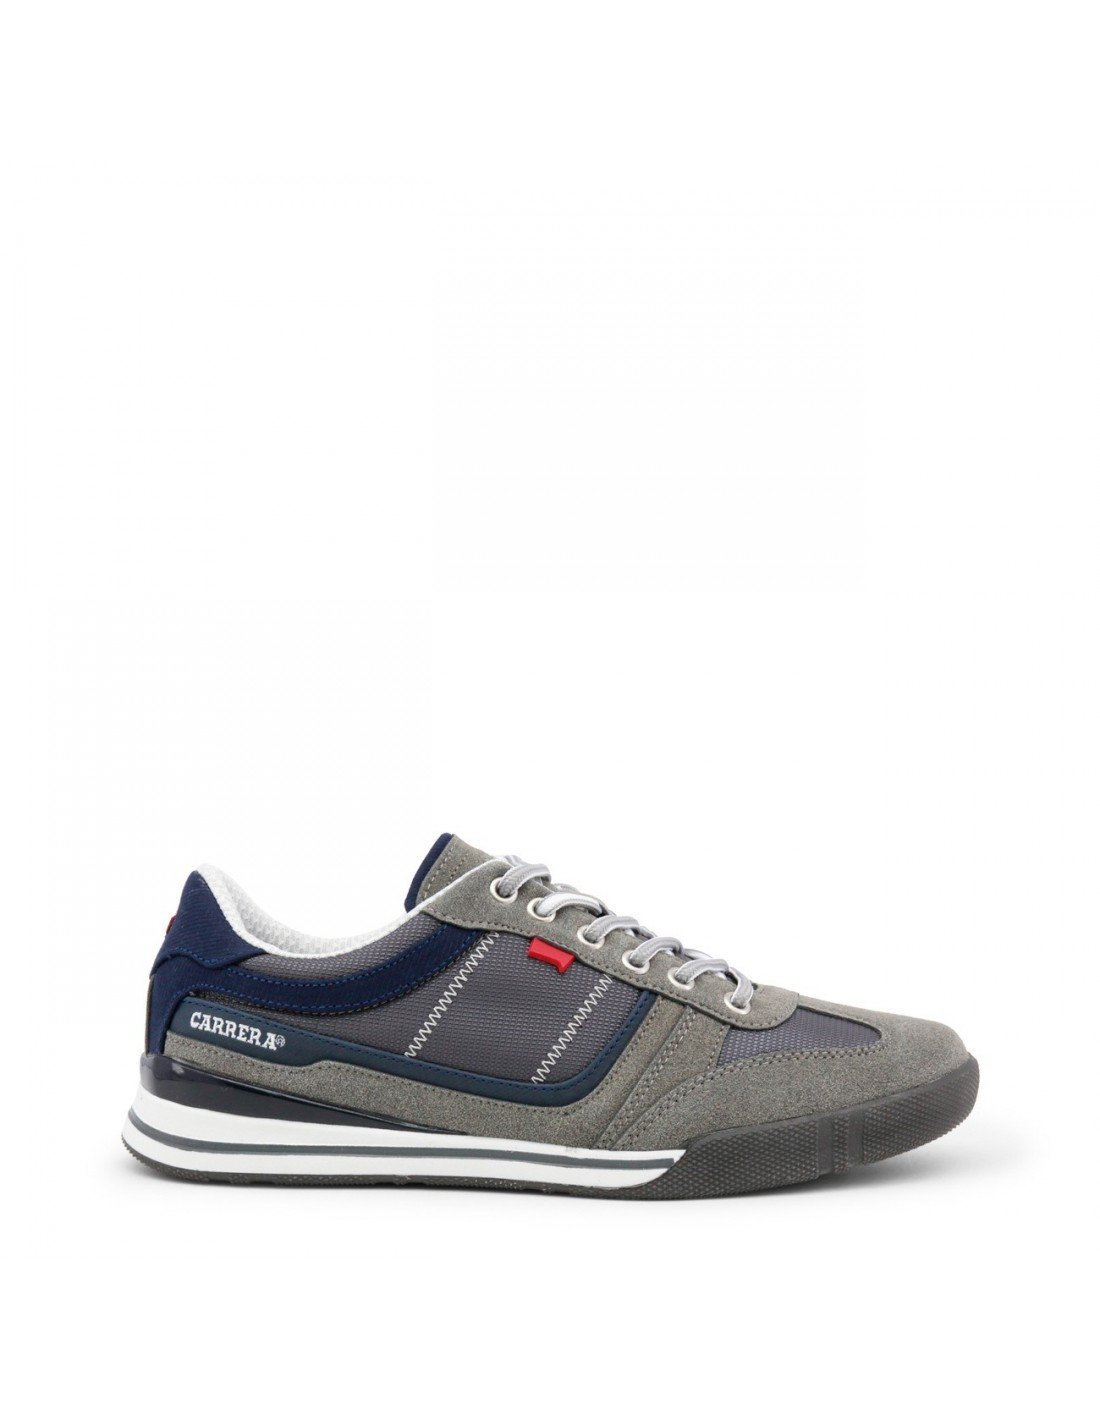 Carrera Jeans Sneaker CAM817300 Hombre 42 EU|Gray And Blue